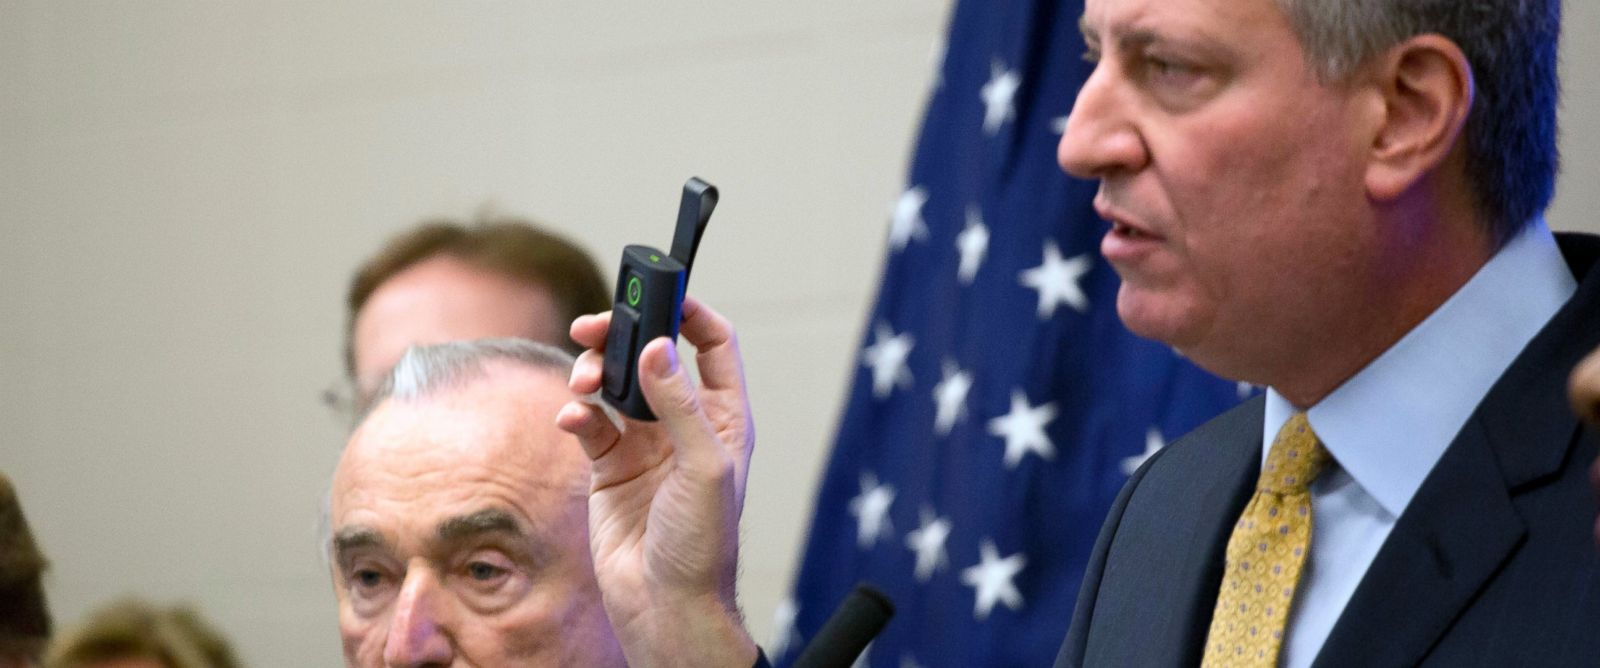 PHOTO: New York Mayor Bill de Blasio holds a body camera during a news conference to discuss a pilot program for the use of body cameras for some police officers, at the Police Academy in Queens, Dec. 3, 2014 in New York.